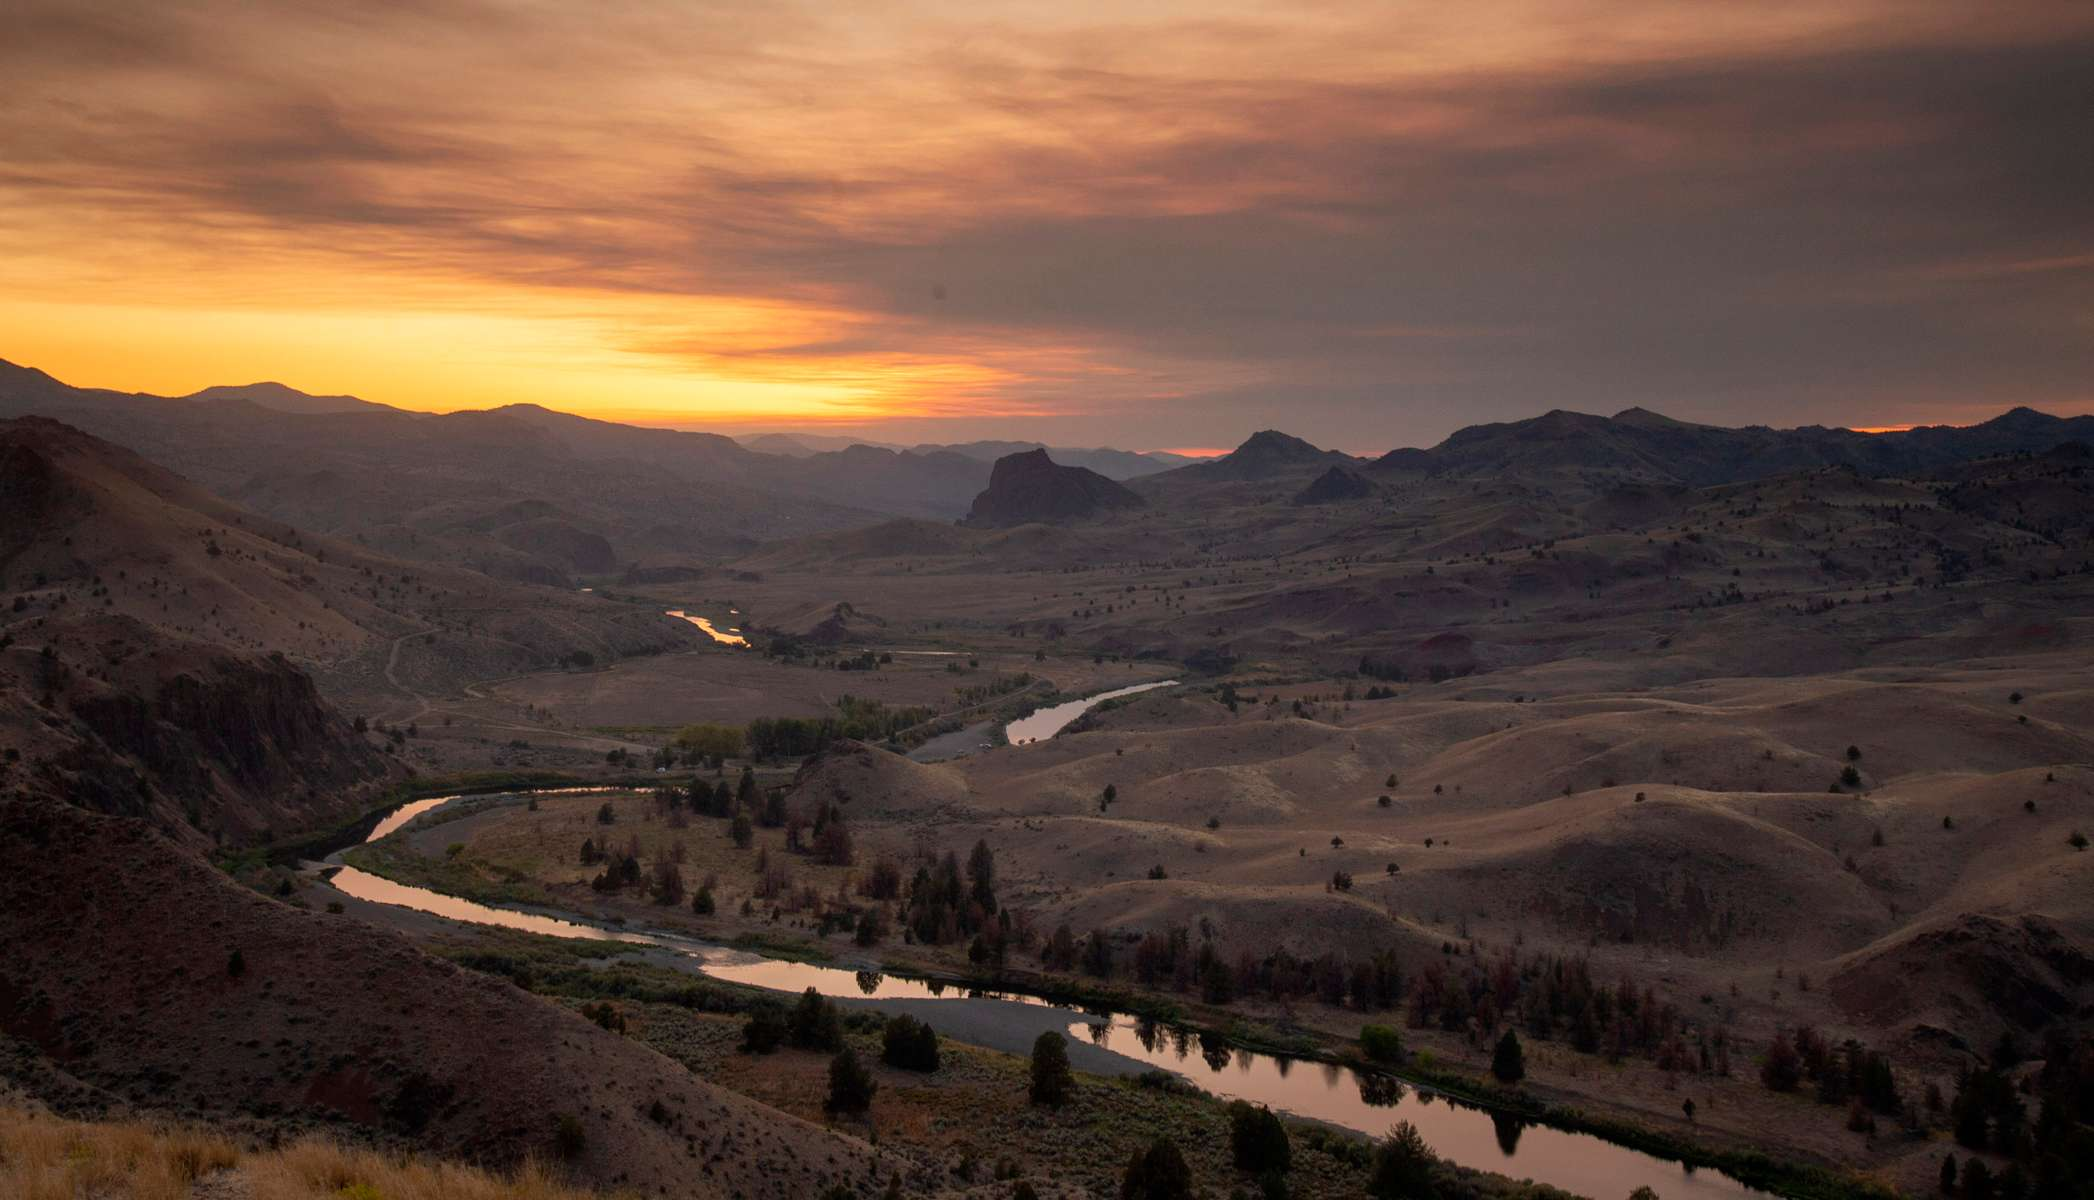 The John Day River courses through Wheeler County as the sun sets on Sept. 3, 2020, near Mitchell, Oregon. Wheeler County covers more than 1,700 square miles in north central Oregon and has a population of about 1,300 people. It is one of 10 counties in the United States that has yet to record a coronavirus case.